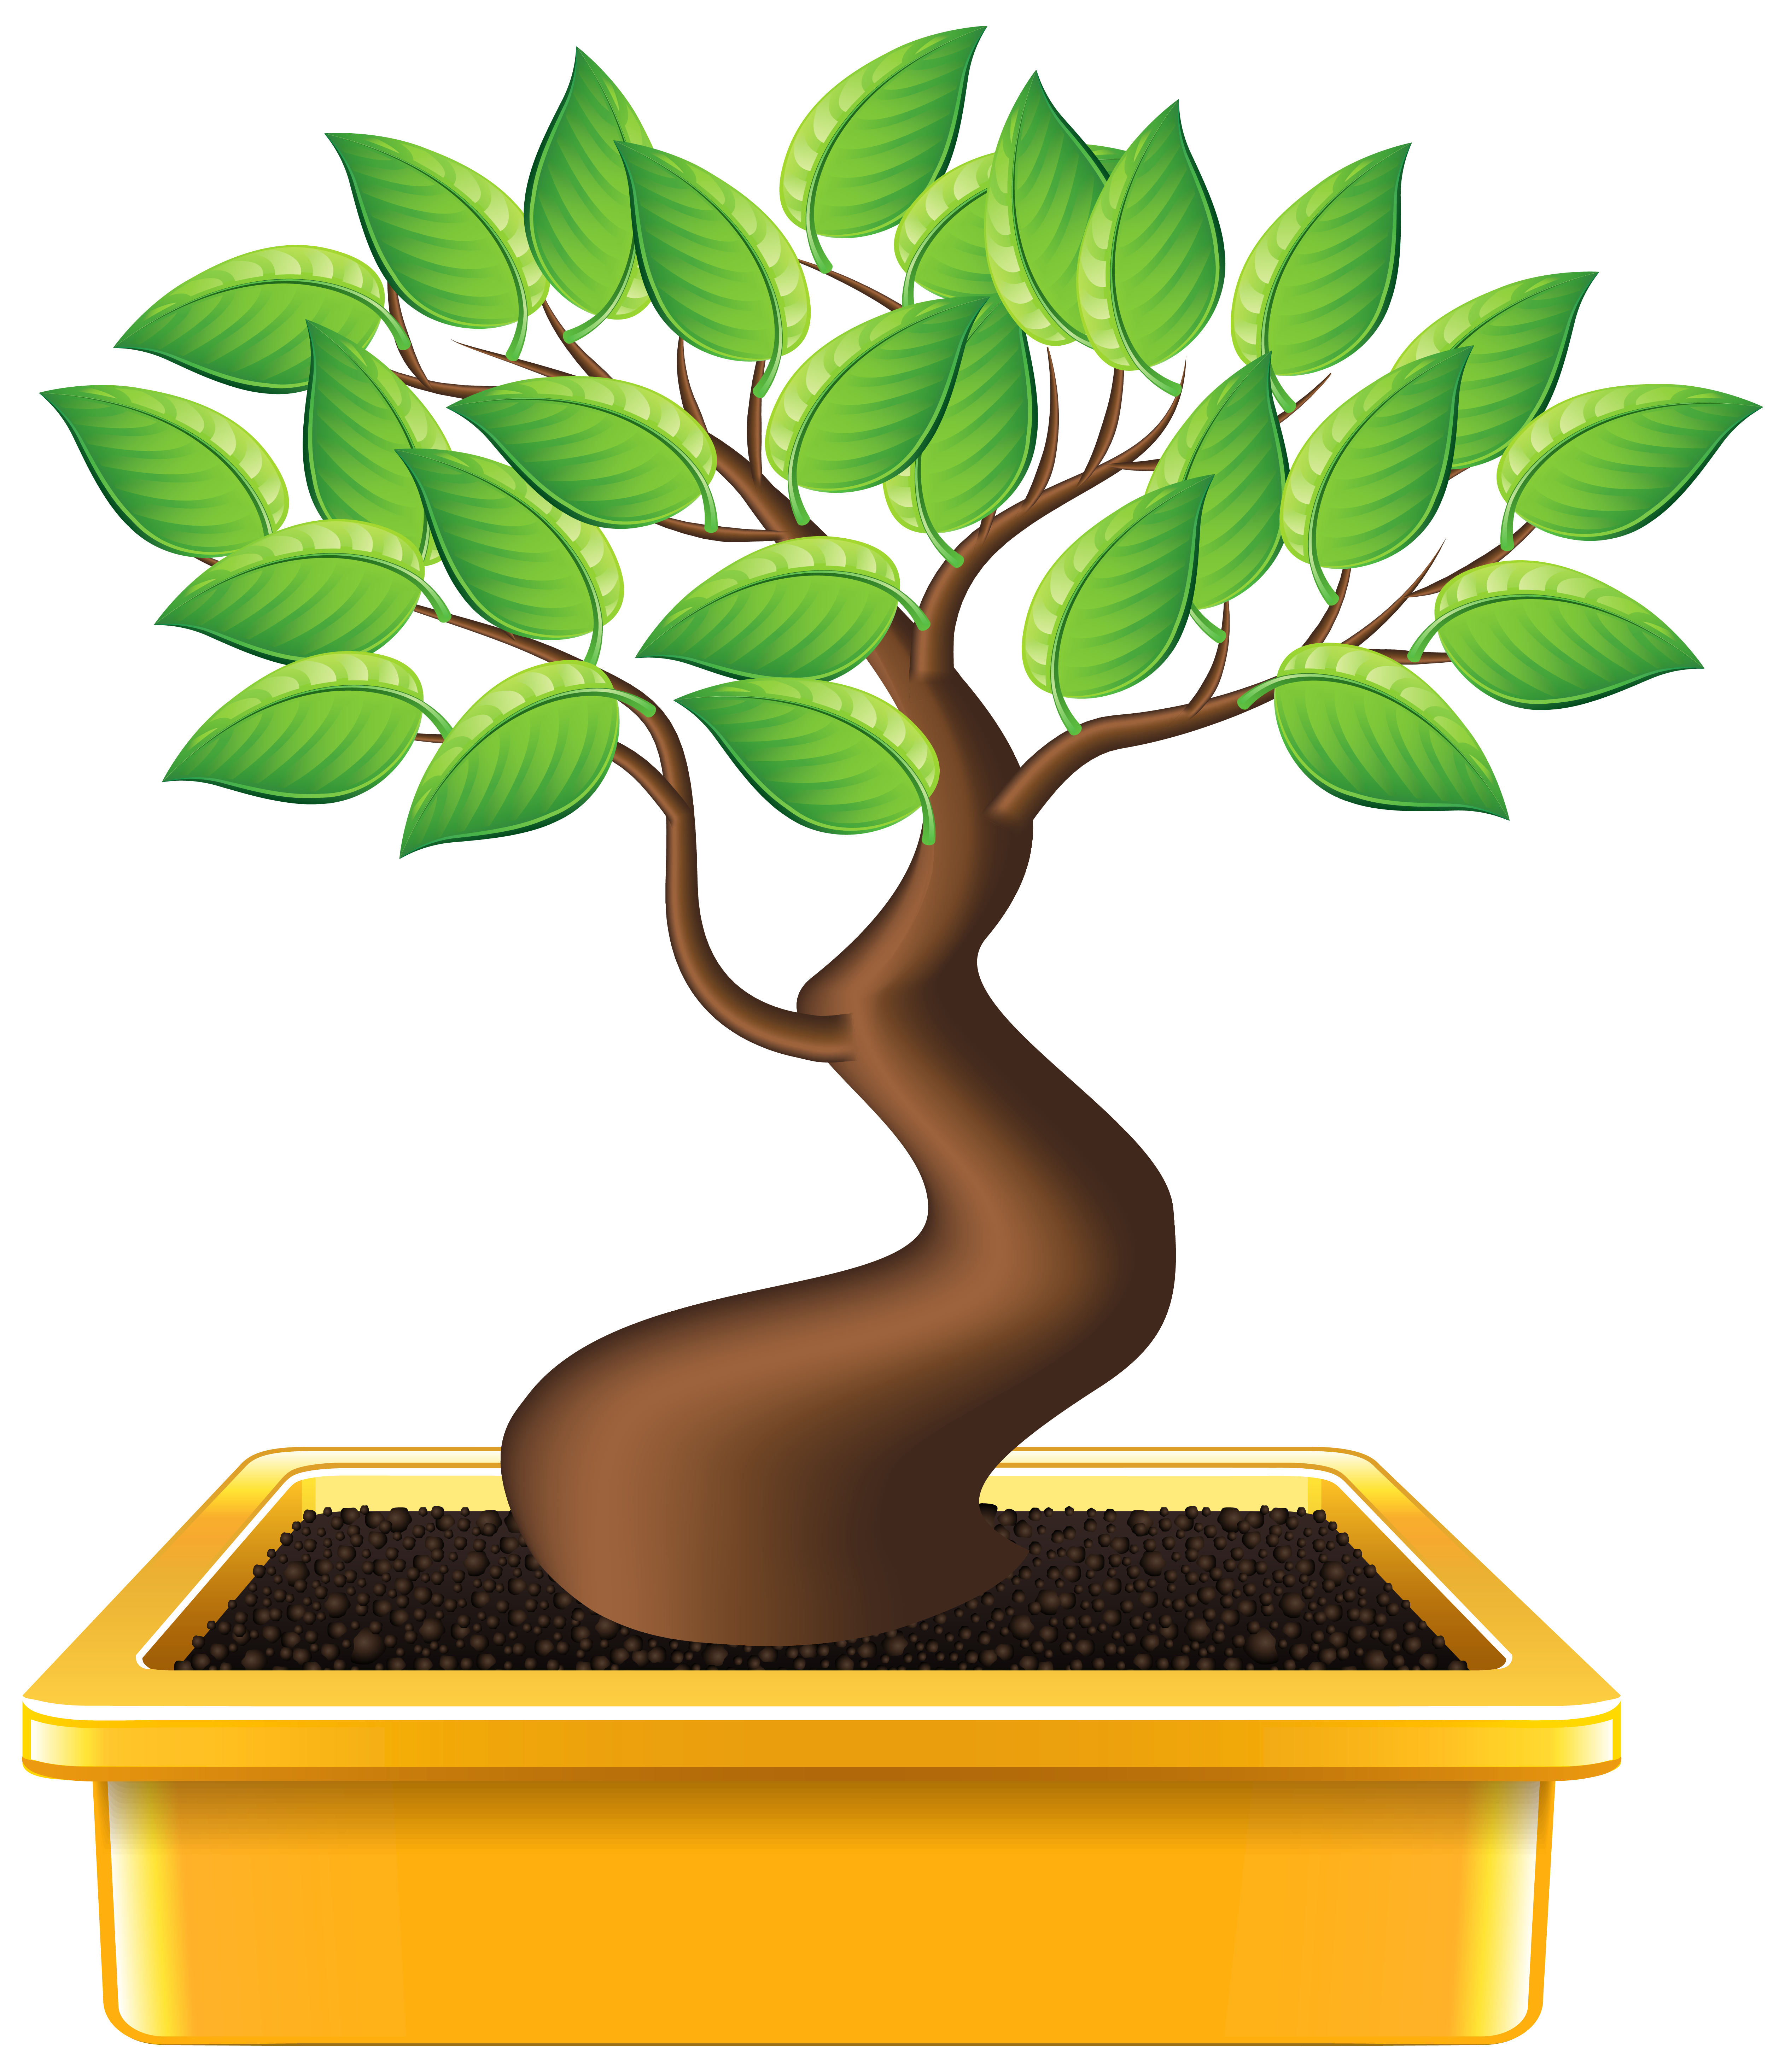 Bonsai images clipart png freeuse Bonsai PNG Clipart Image | Gallery Yopriceville - High-Quality ... png freeuse